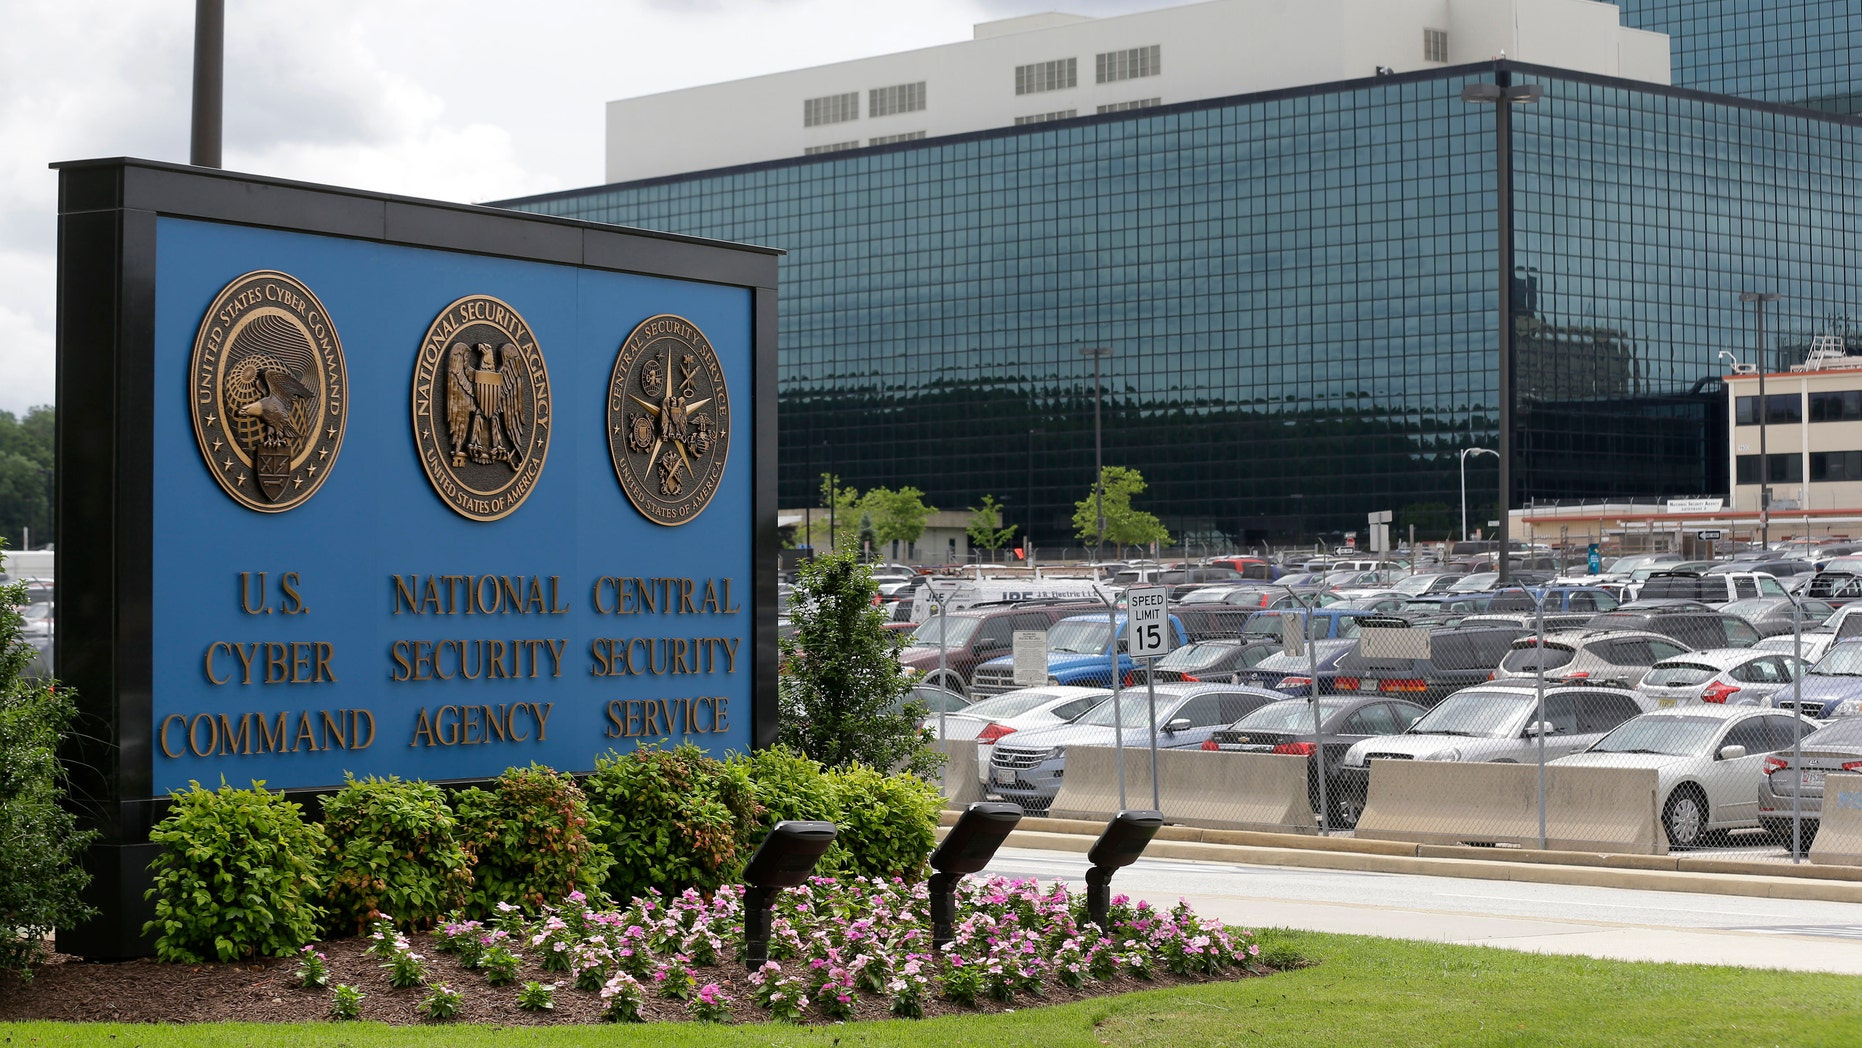 FILE - This June 6, 2013 file photo shows a sign outside the National Security Agency (NSA) campus in Fort Meade, Md.  A civil rights lawyer says the American Civil Liberties Union (ACLU) is very disappointed that a New York judge has found that a government program that collects millions of Americans' telephone records is legal. (AP Photo/Patrick Semansky, File)